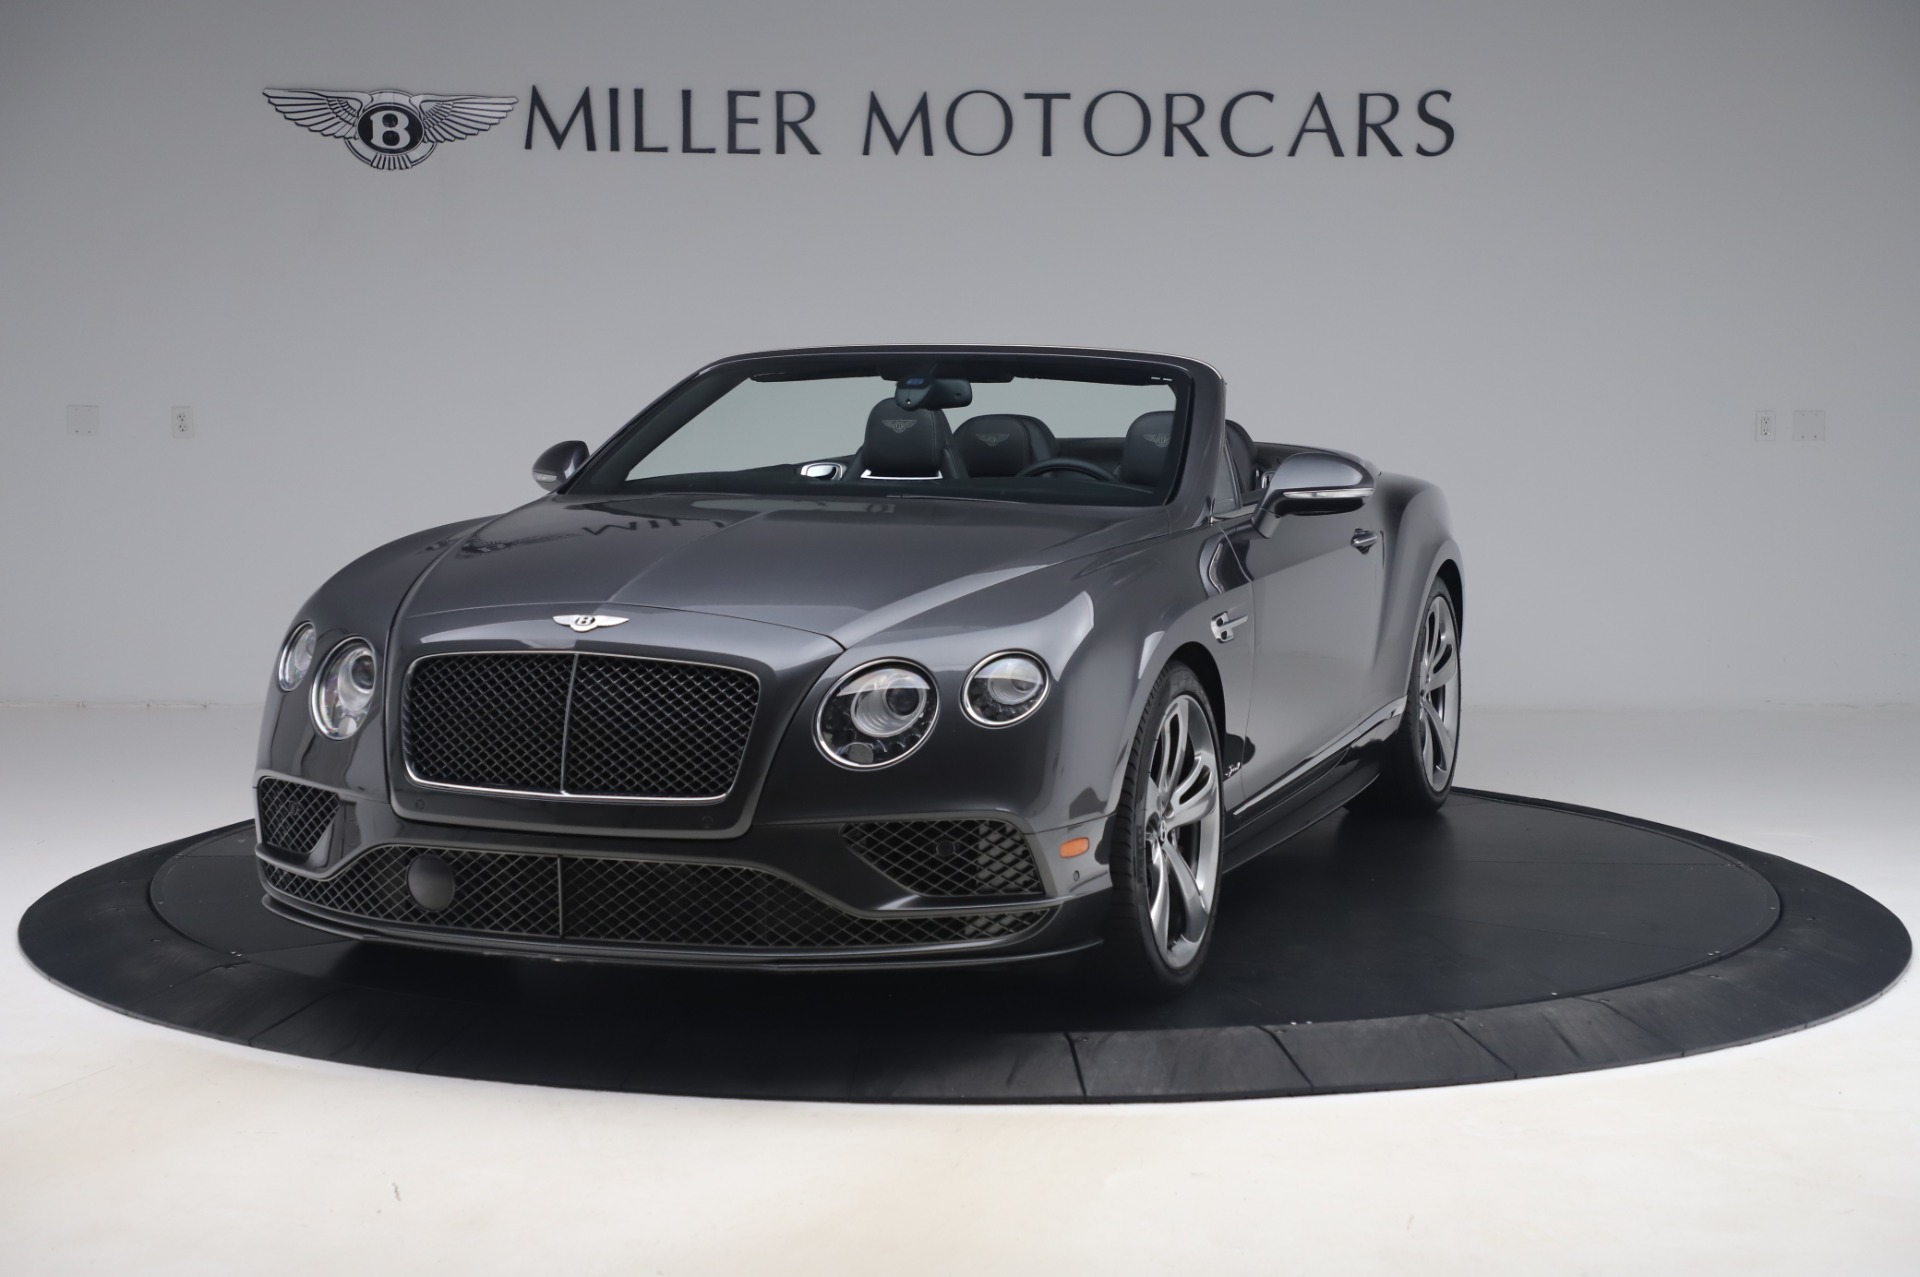 Used 2016 Bentley Continental GT Speed for sale Sold at Bentley Greenwich in Greenwich CT 06830 1